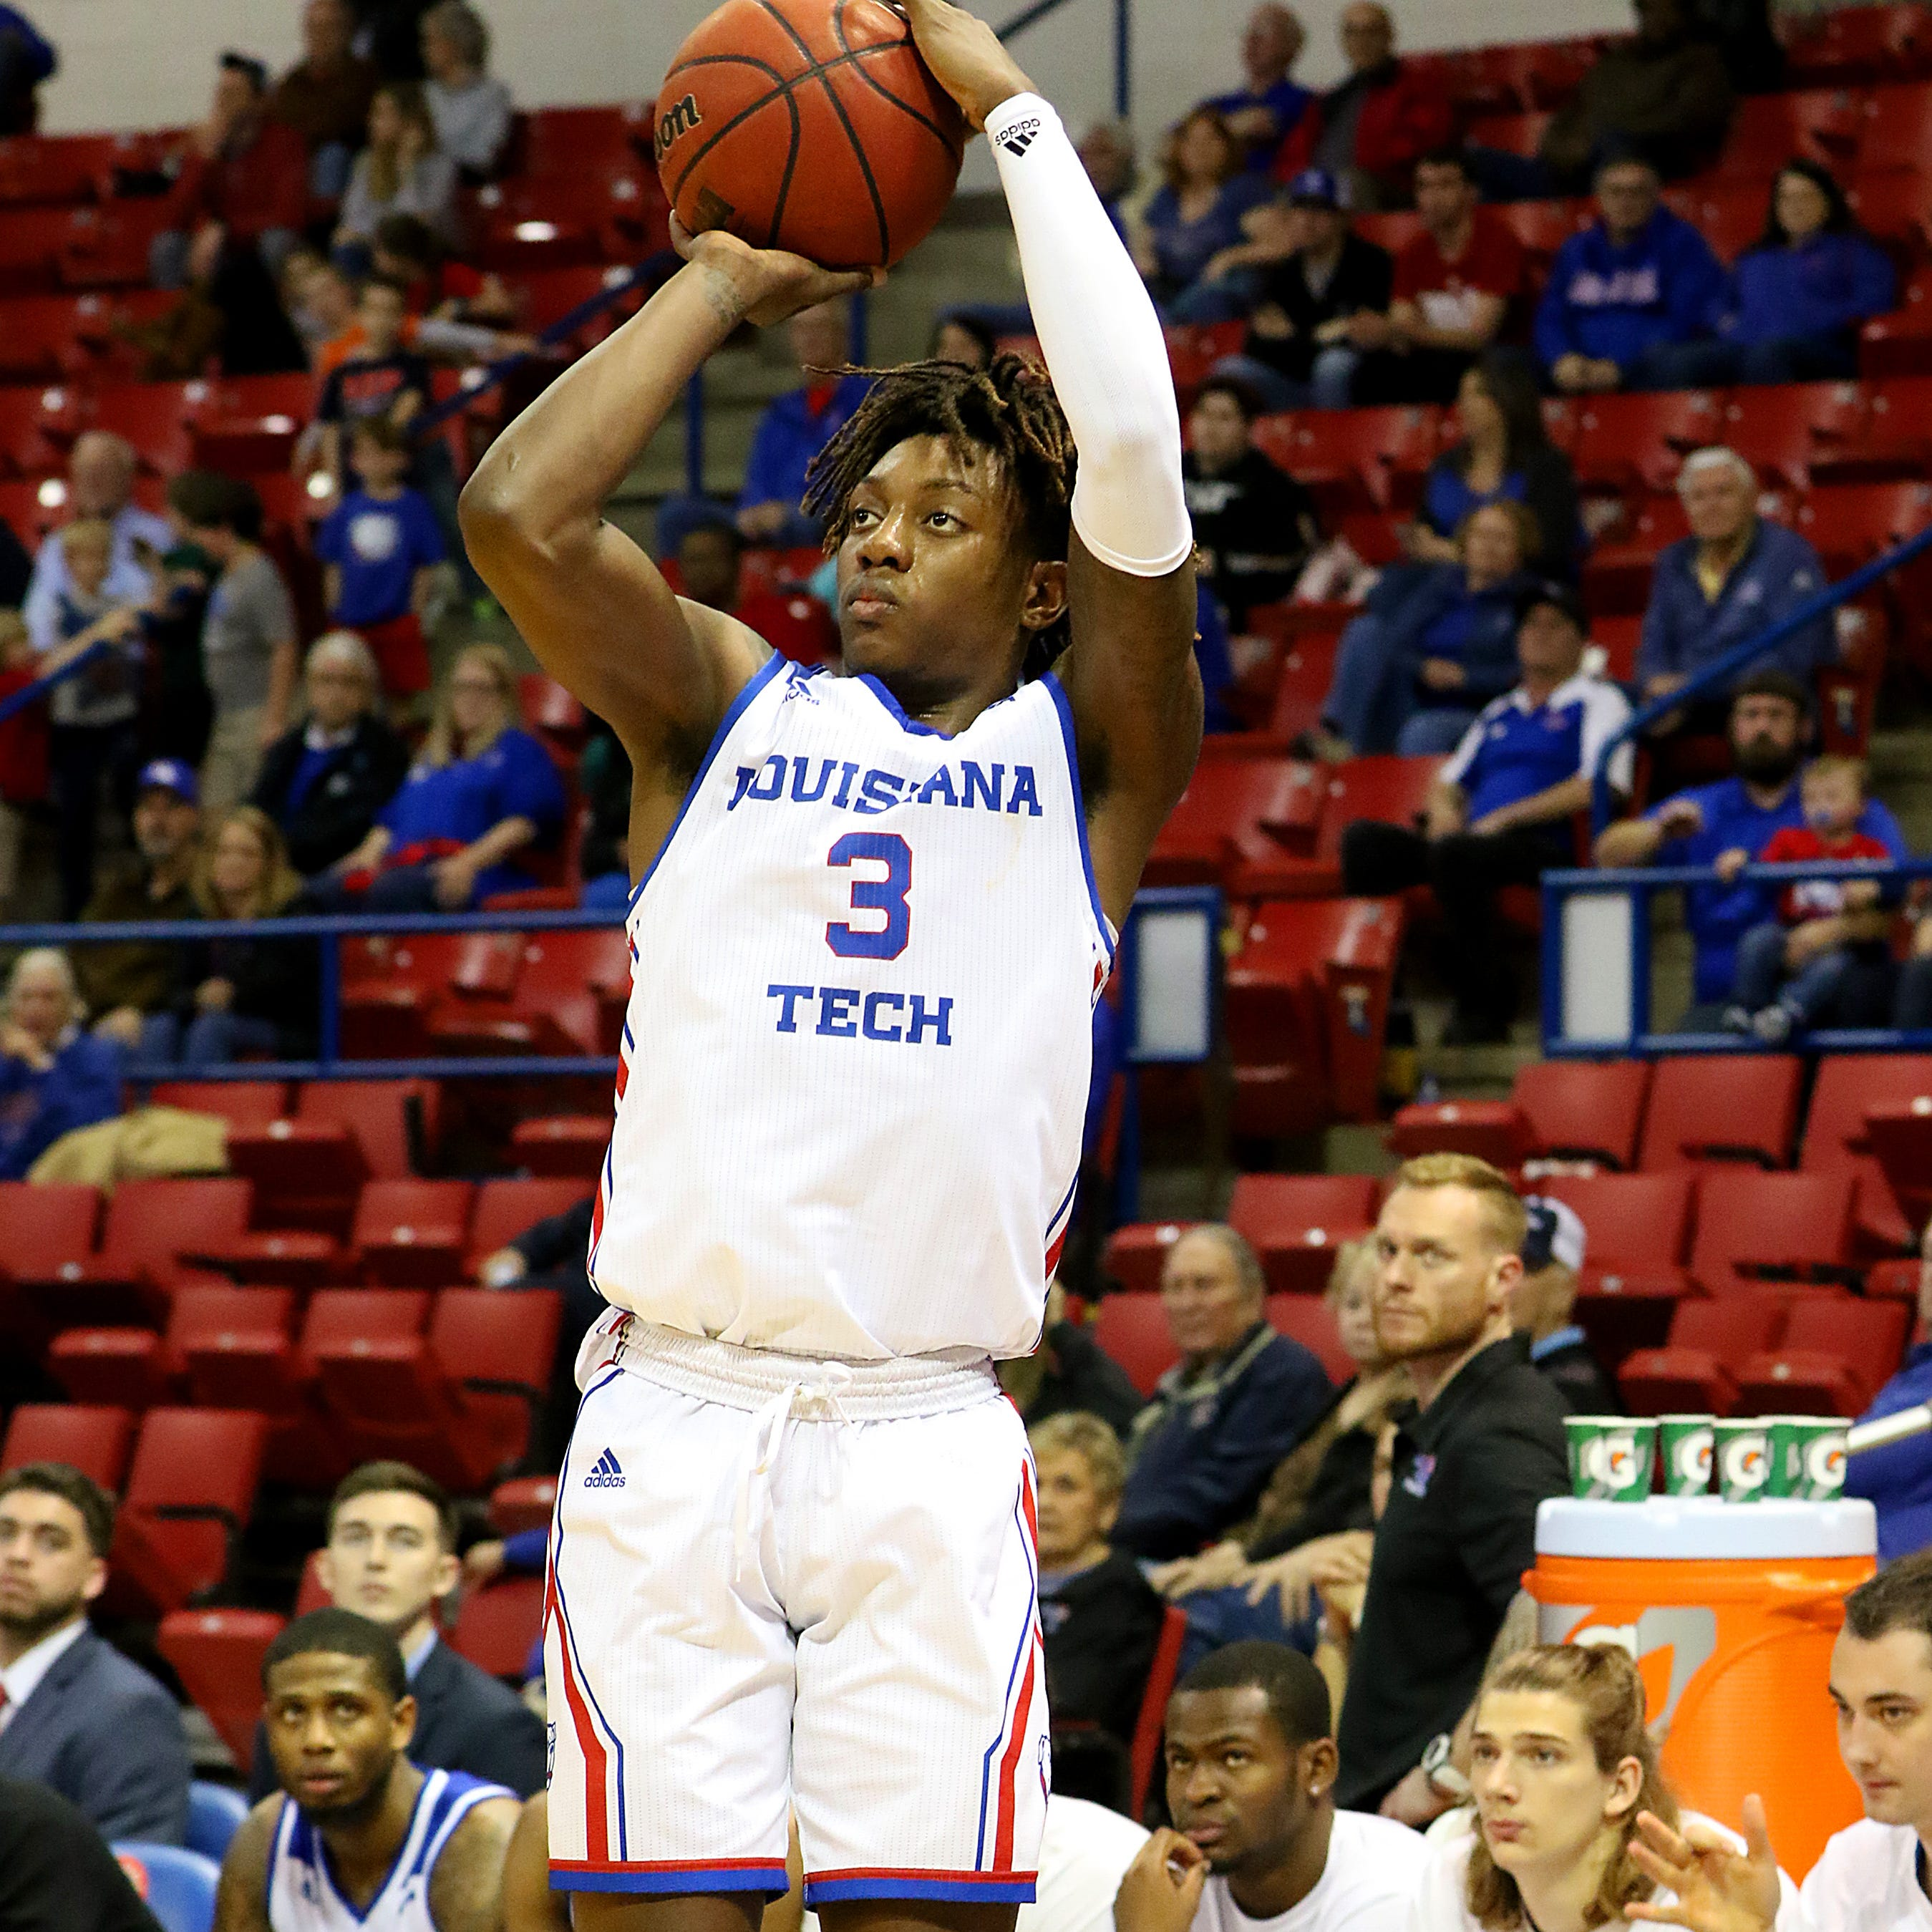 Techsters, Bulldogs begin C-USA tourney Wednesday